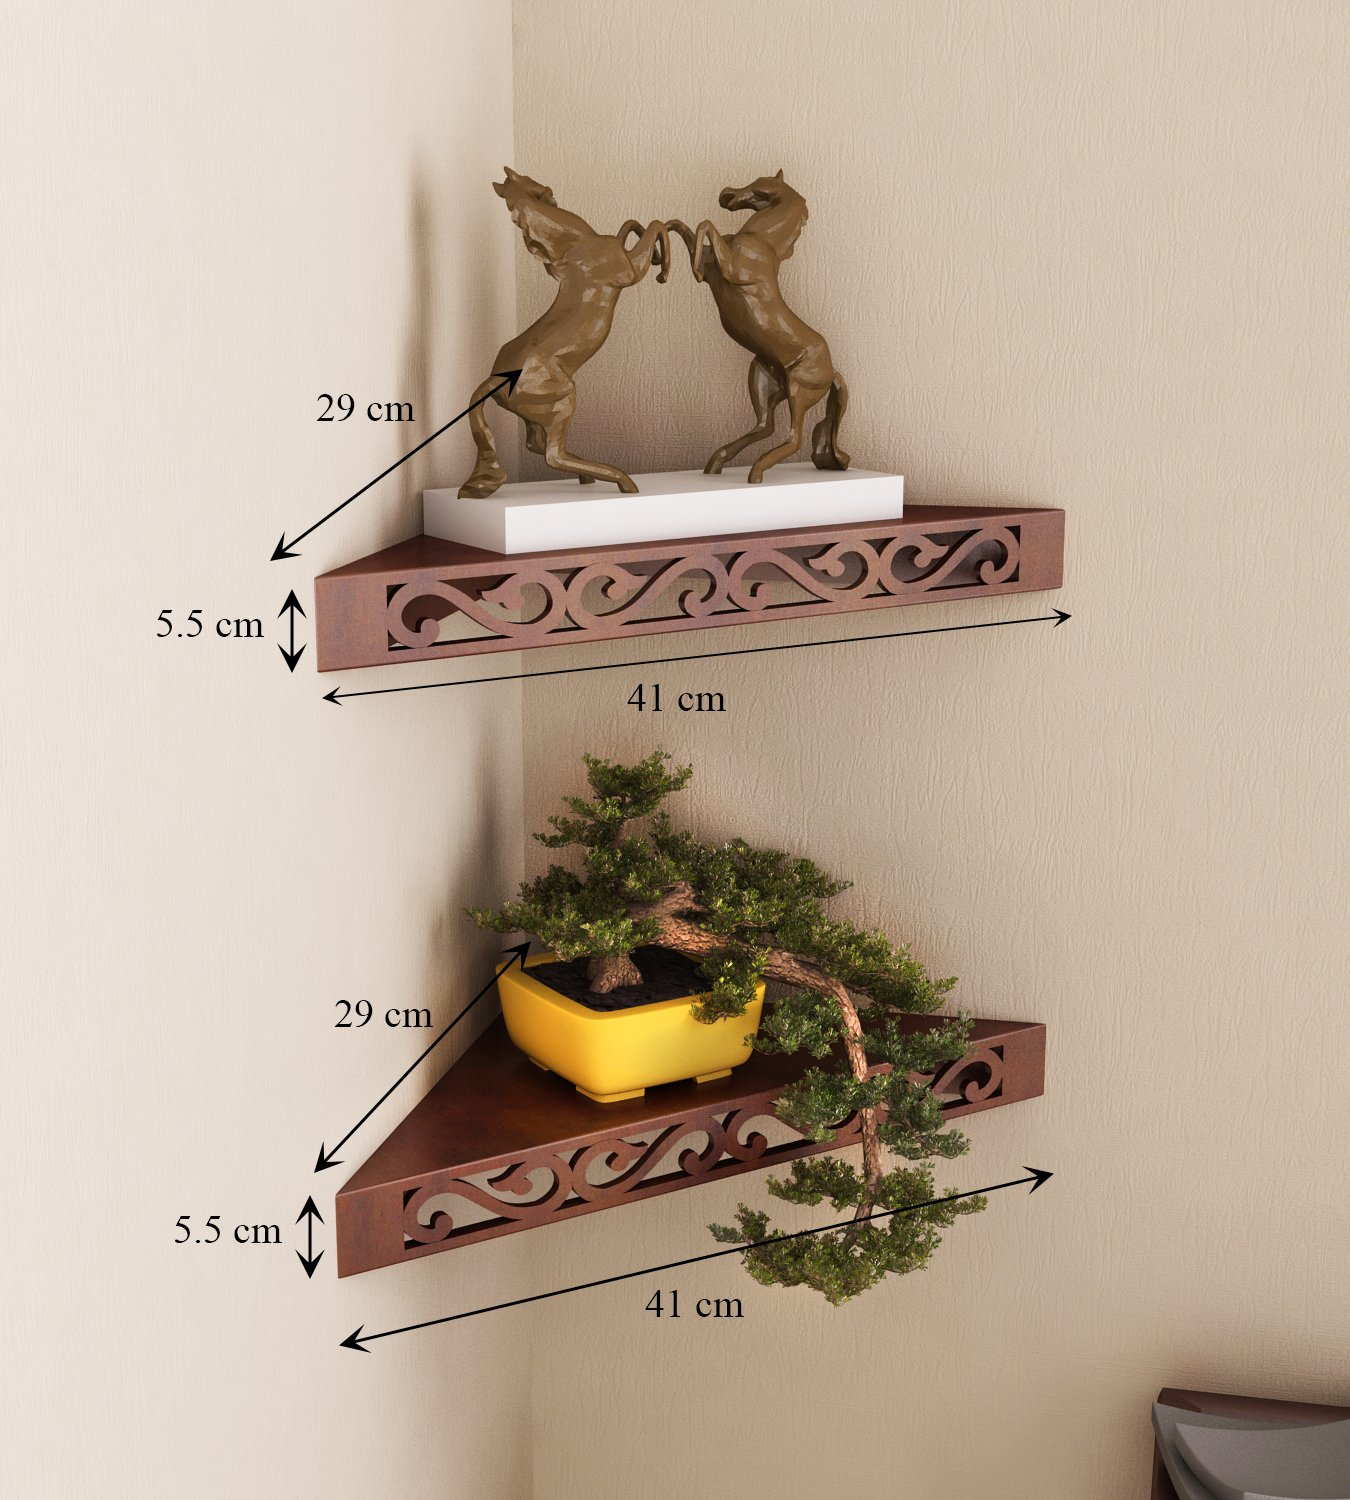 Kyubhi corner shelf for kitchen/ Living Room /Office and Bedroom Set of 2